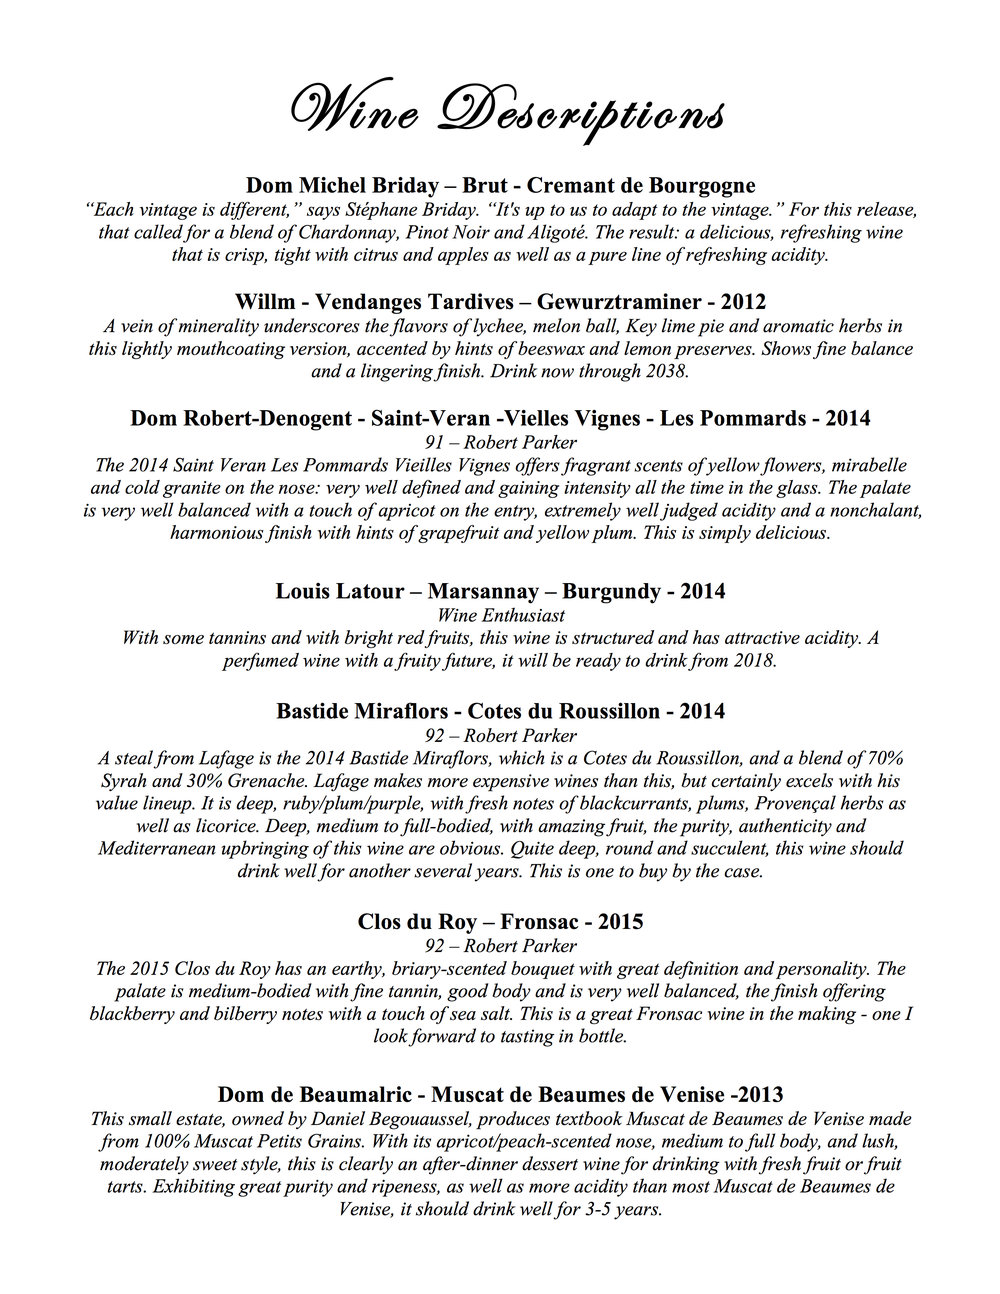 The Speakeasy January French Wine Descriptions